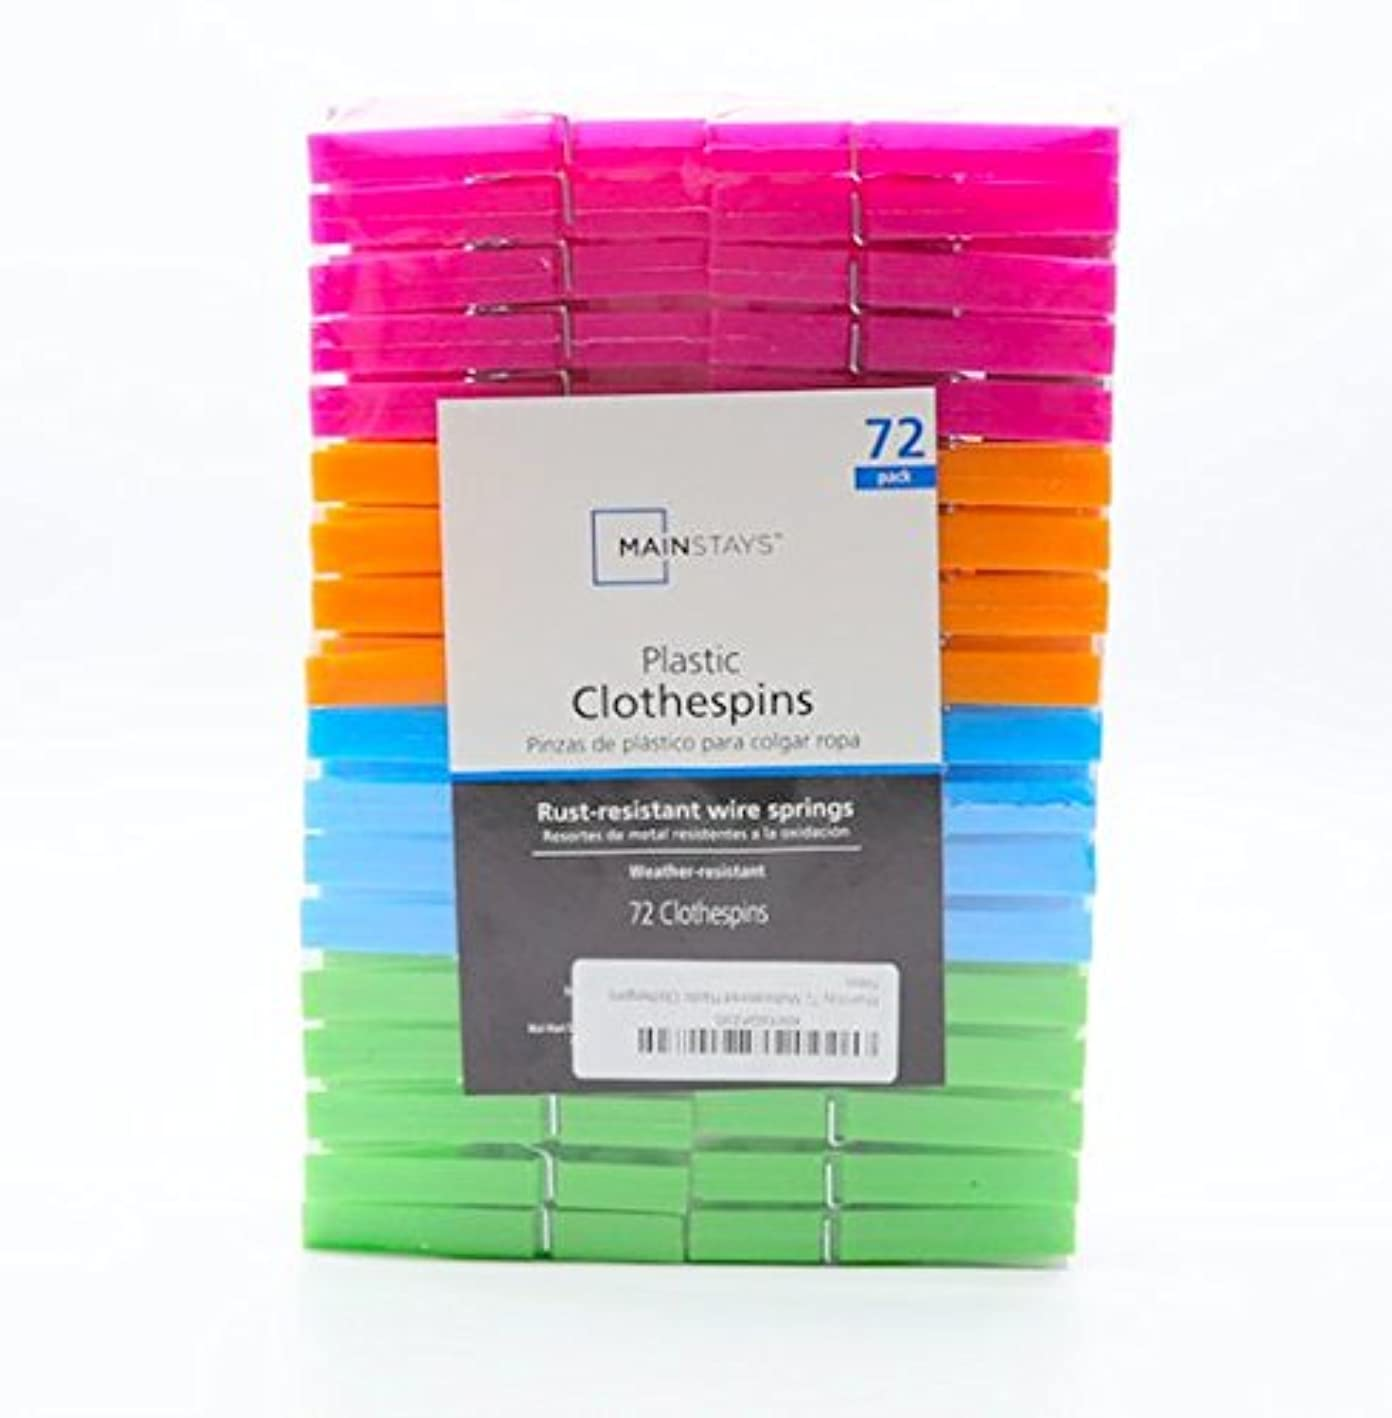 Mainstay 72 Multicolored Plastic Clothespins